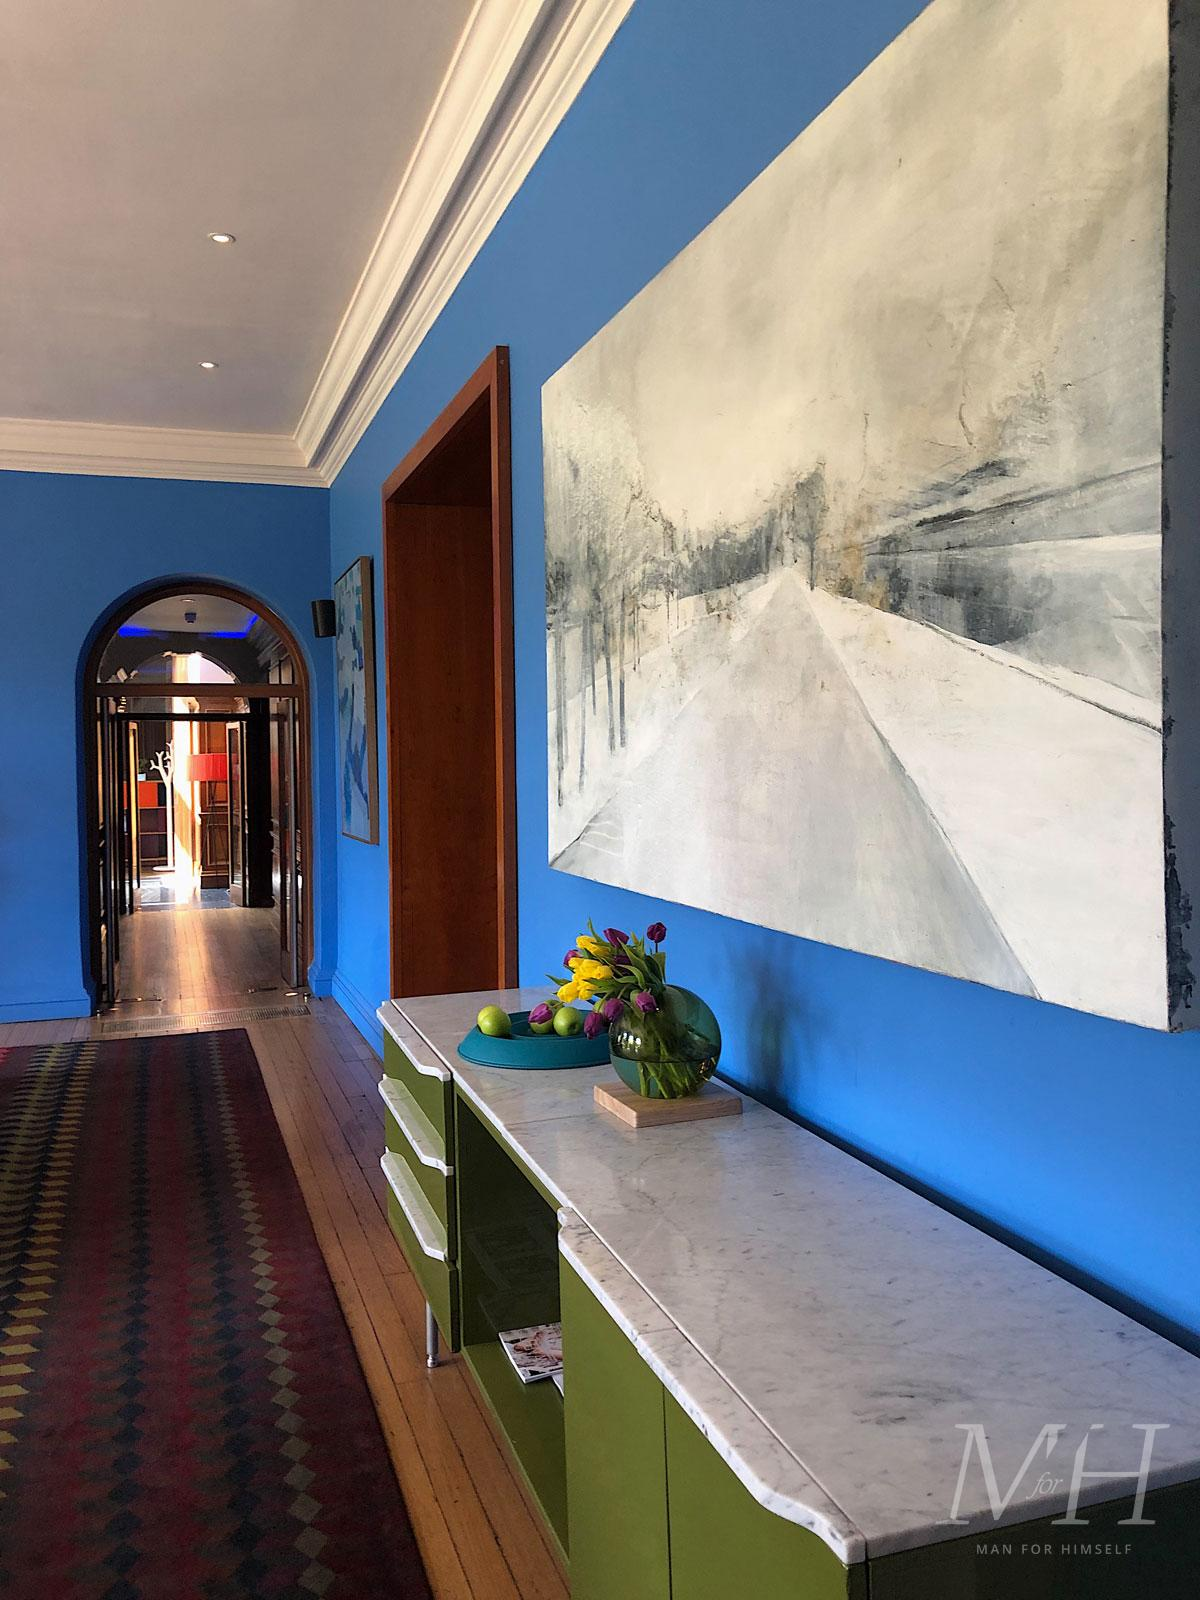 Cowley-Manor-Luxury-Spa-Cotswolds-Man-For-Himself-6